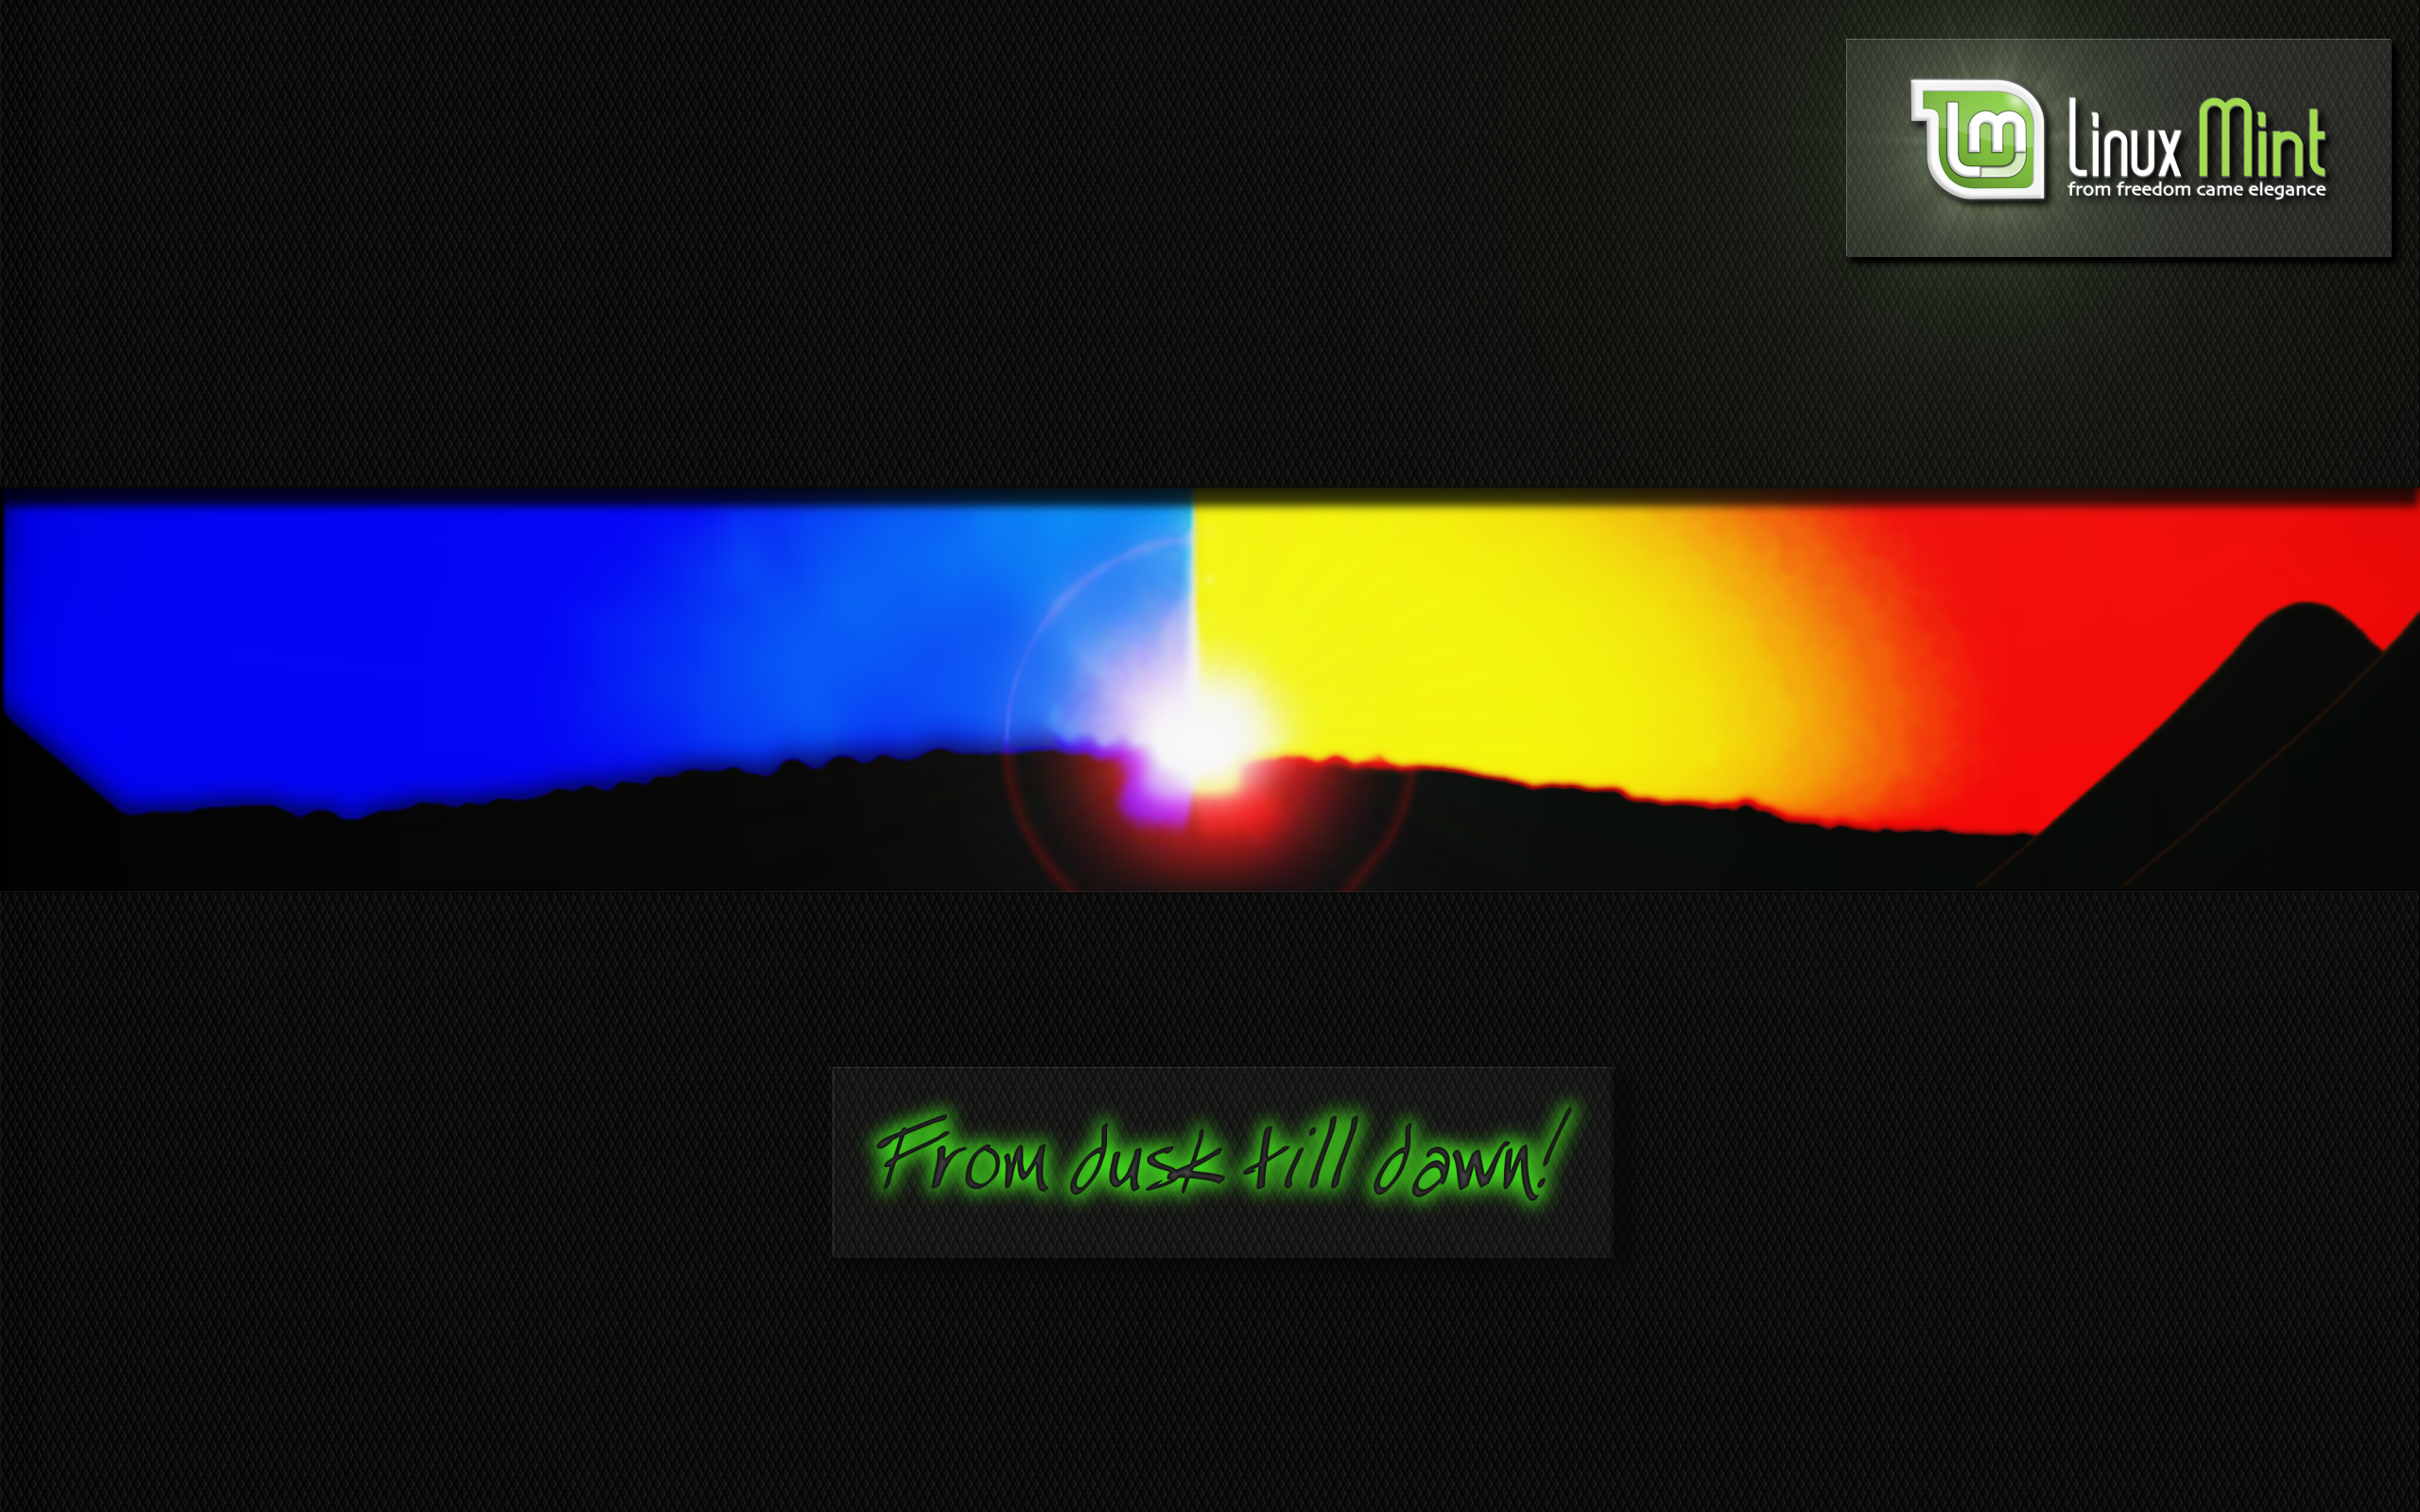 From Dusk Till Dawn New Wallpapers Linux Mint Forums